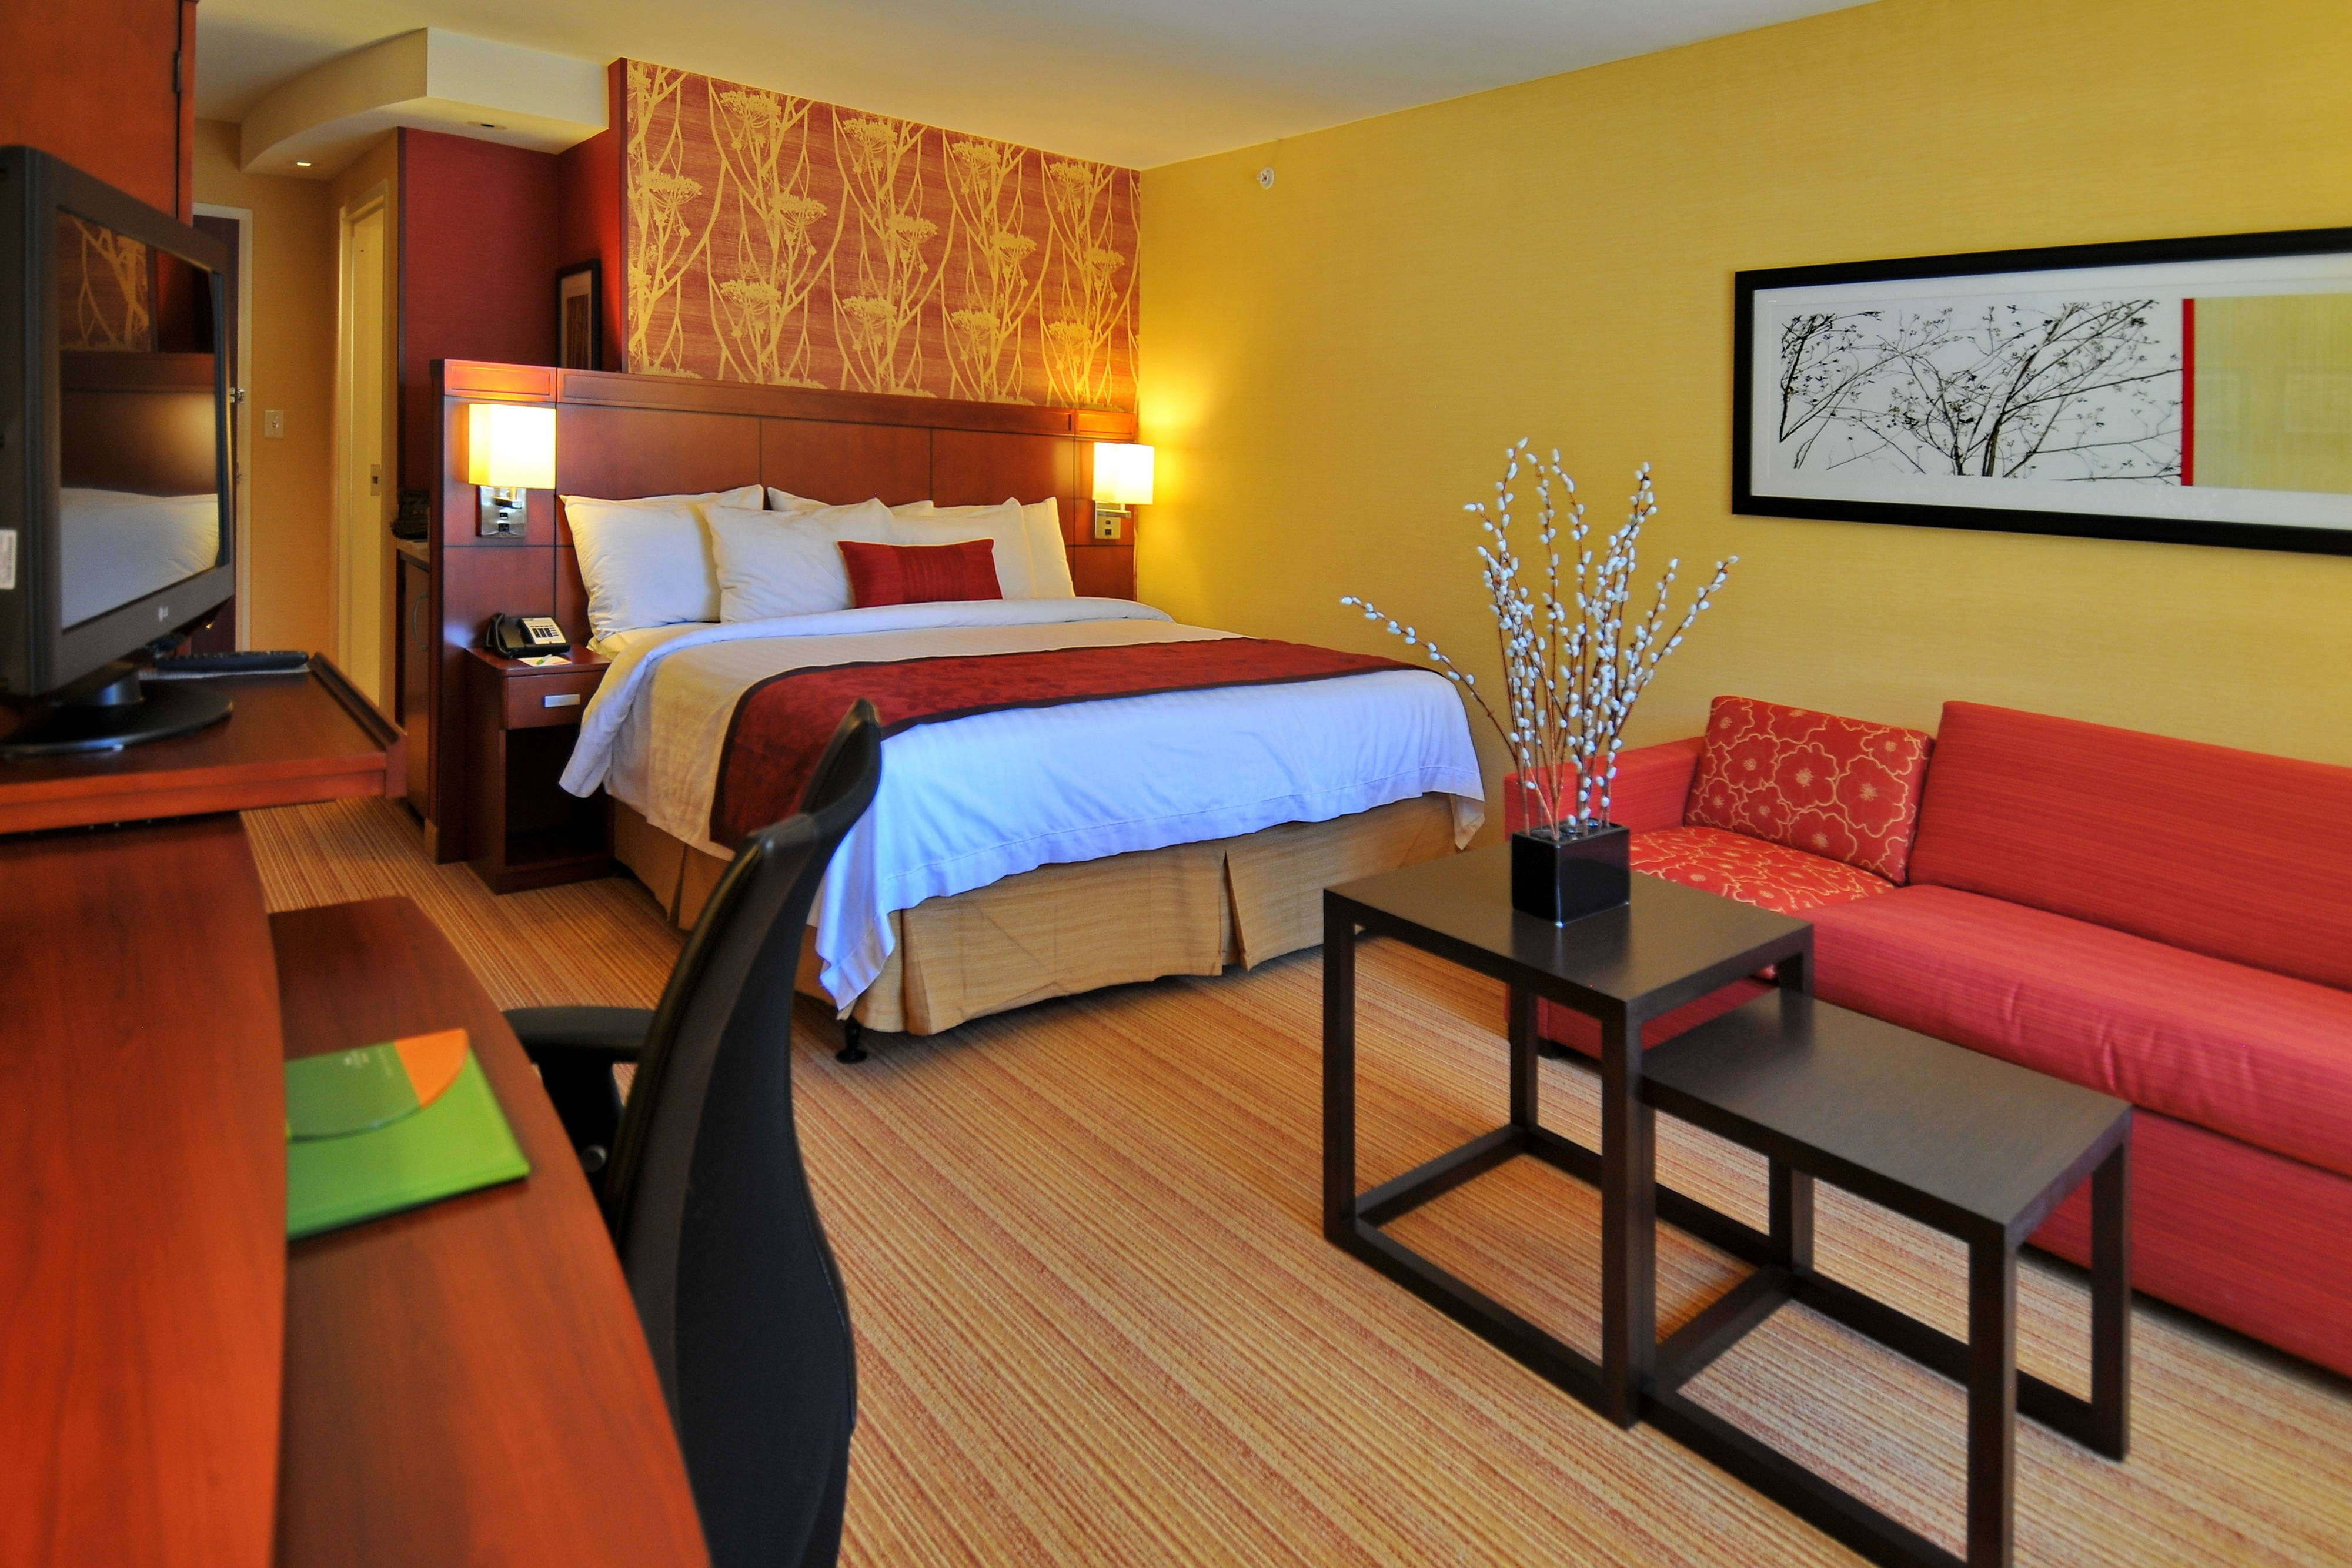 Glenwood Springs Hotels Courtyard Marriott